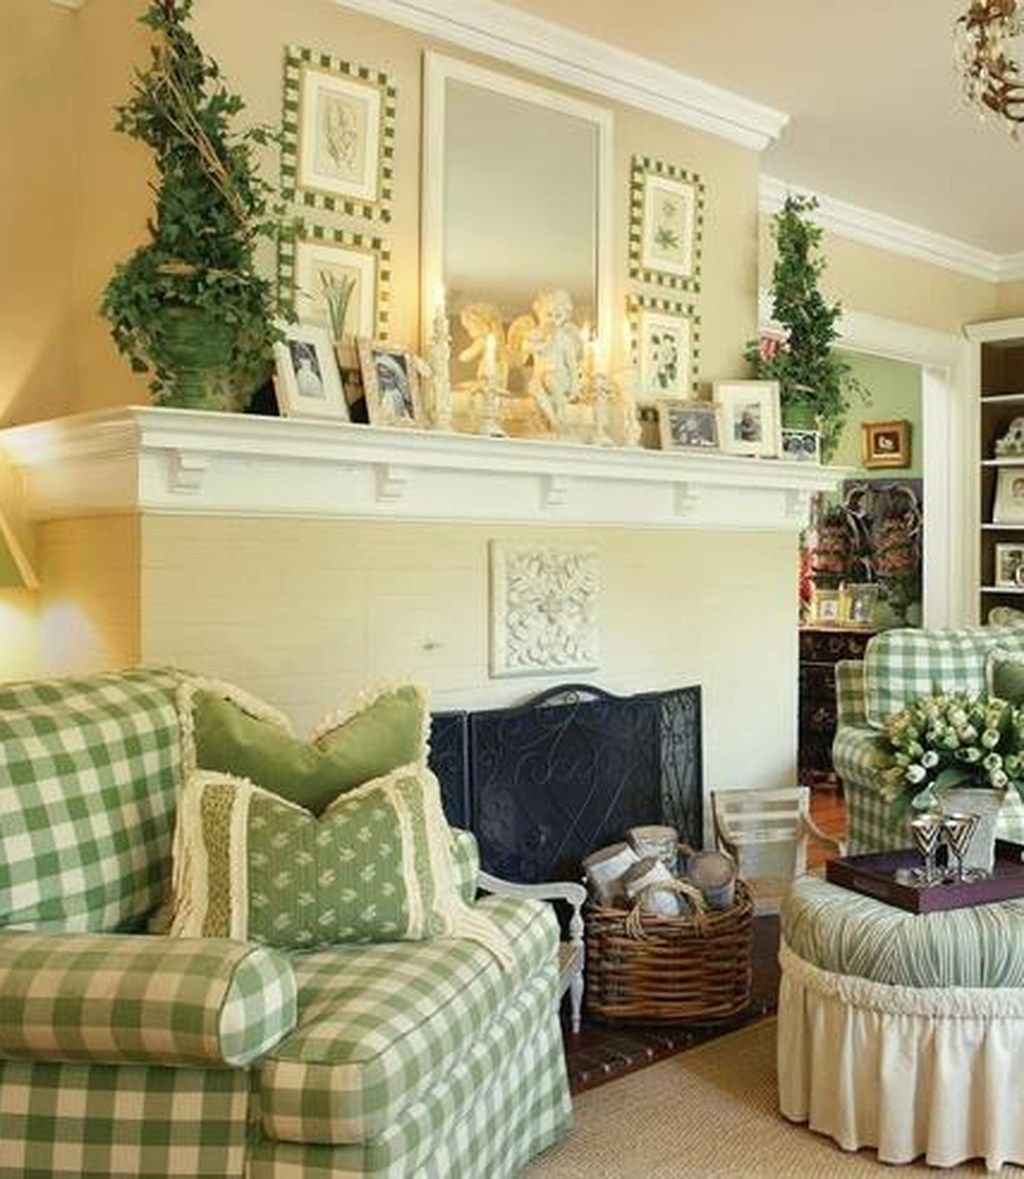 Gorgeous French Country Living Room Decor Ideas 16 | French Country ...